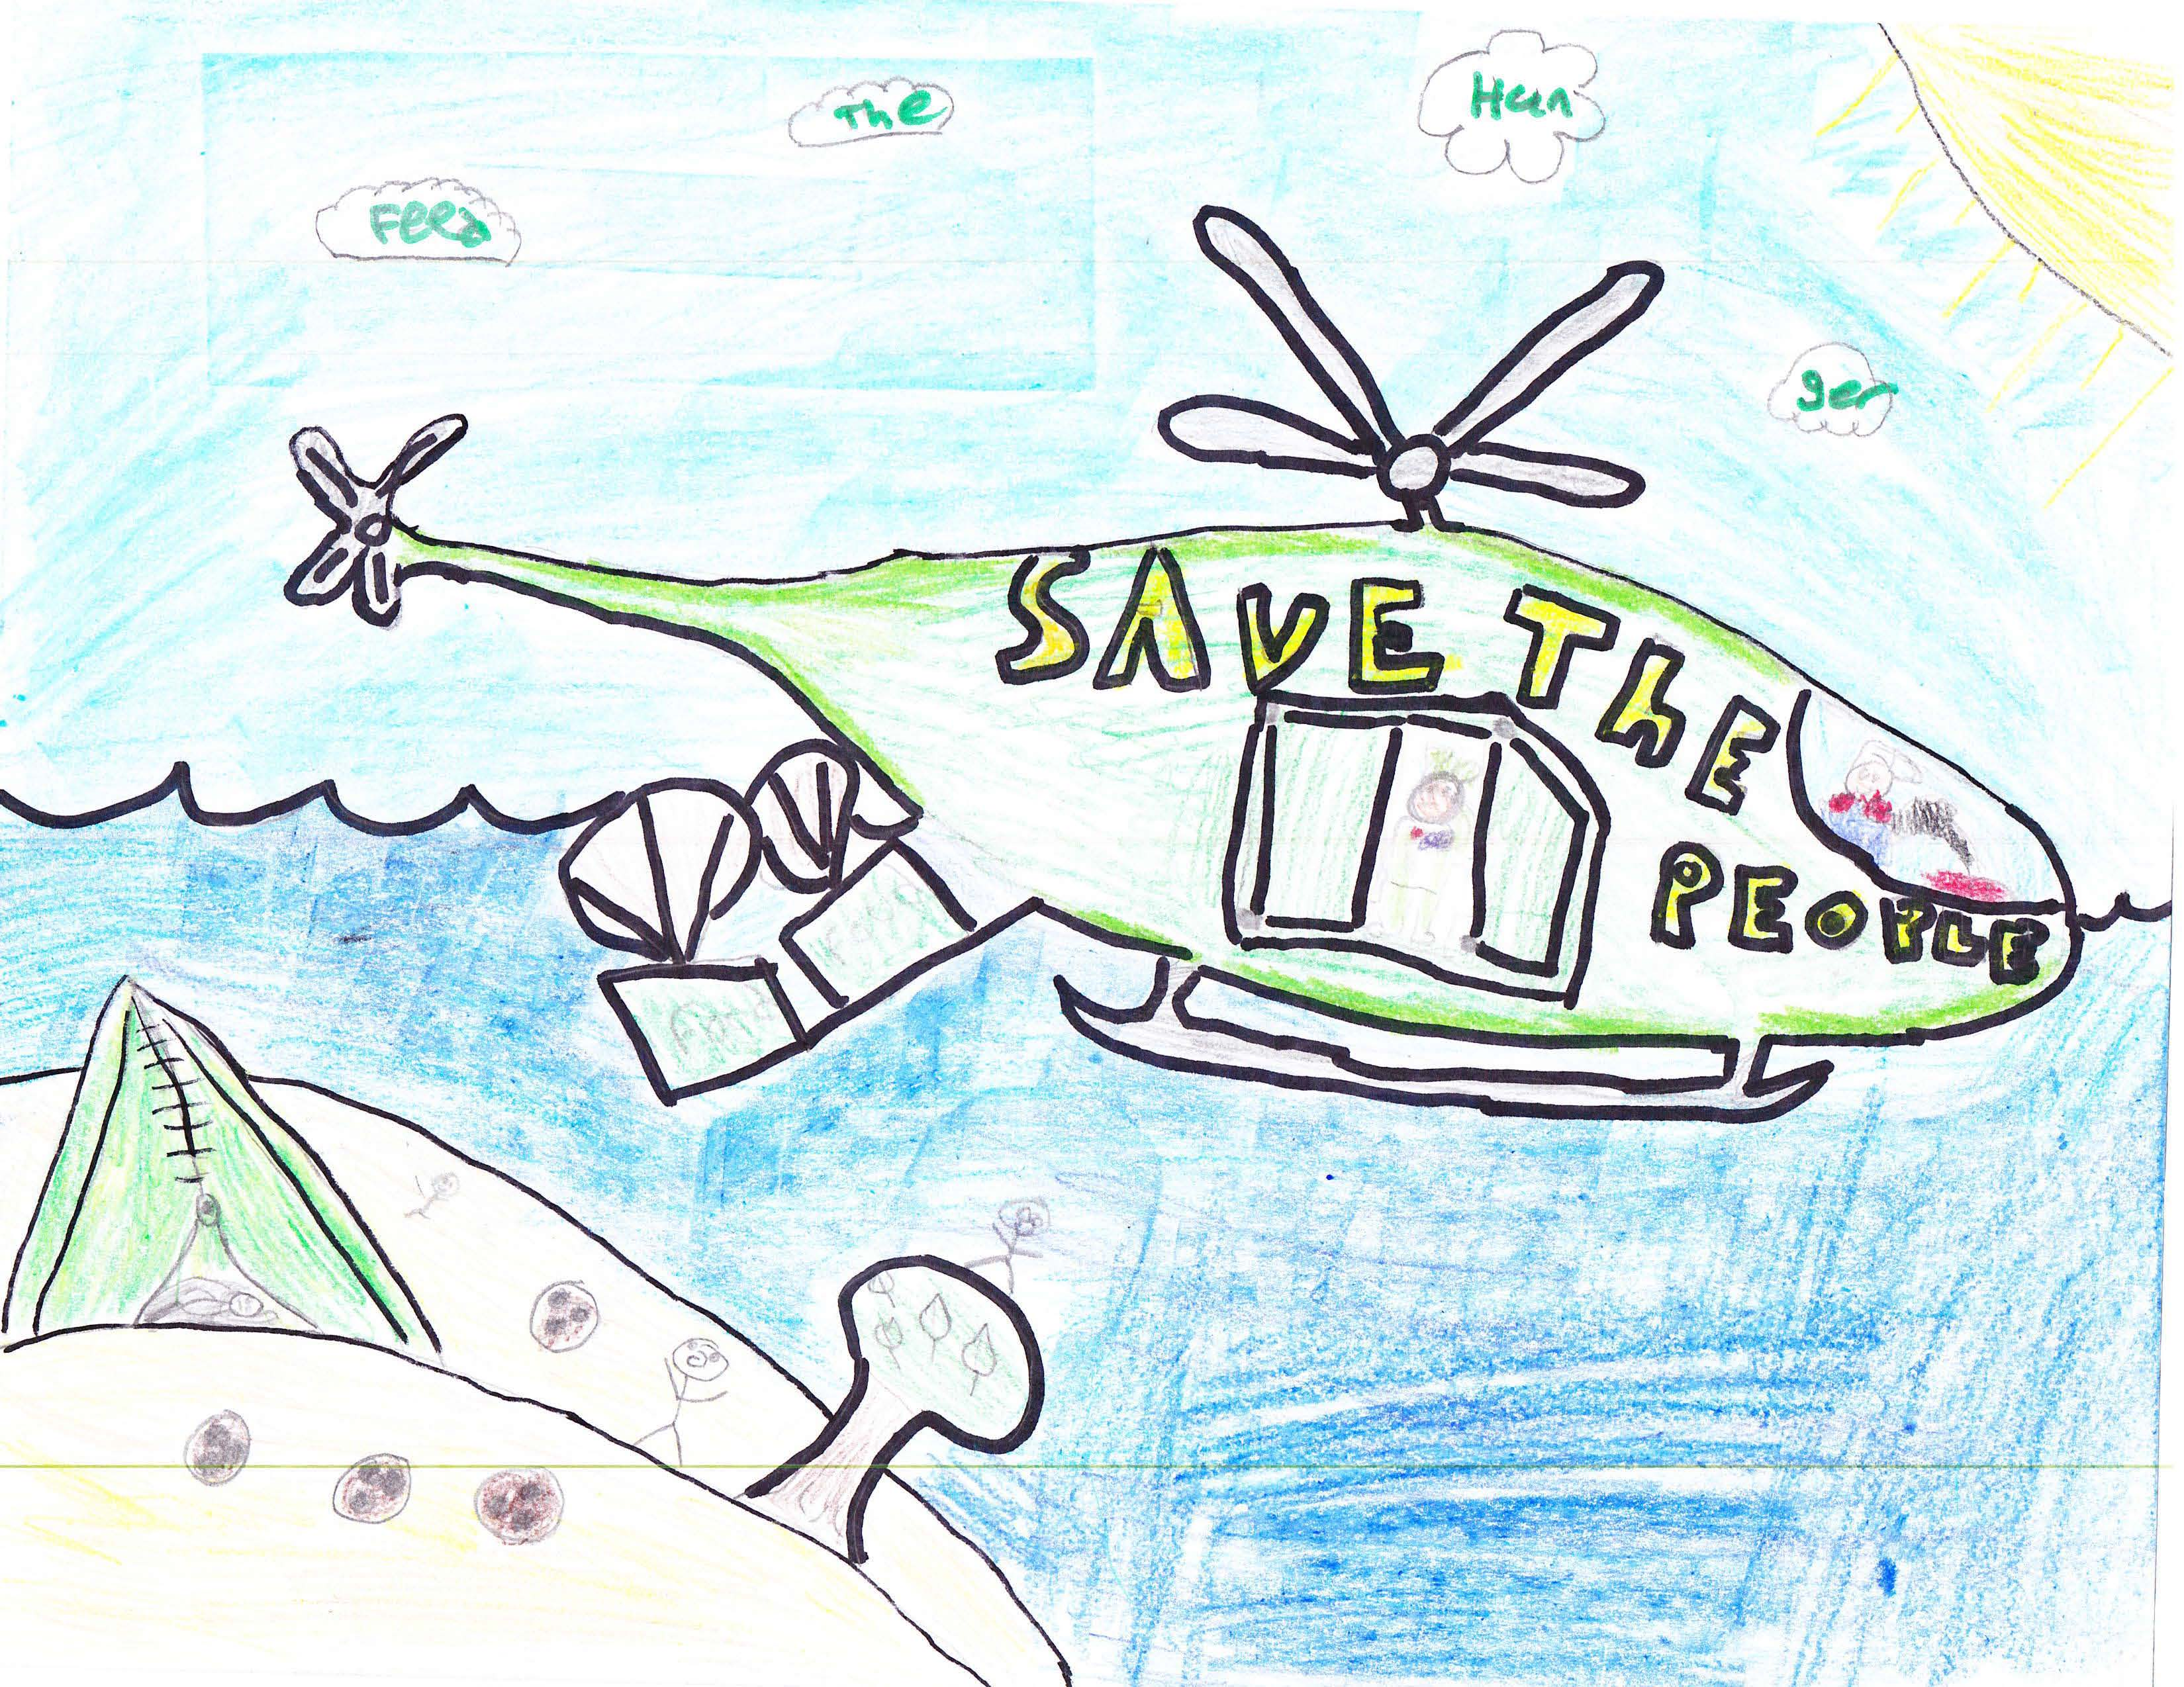 A children's drawing of a helicopter dropping food and supplies to the people below.